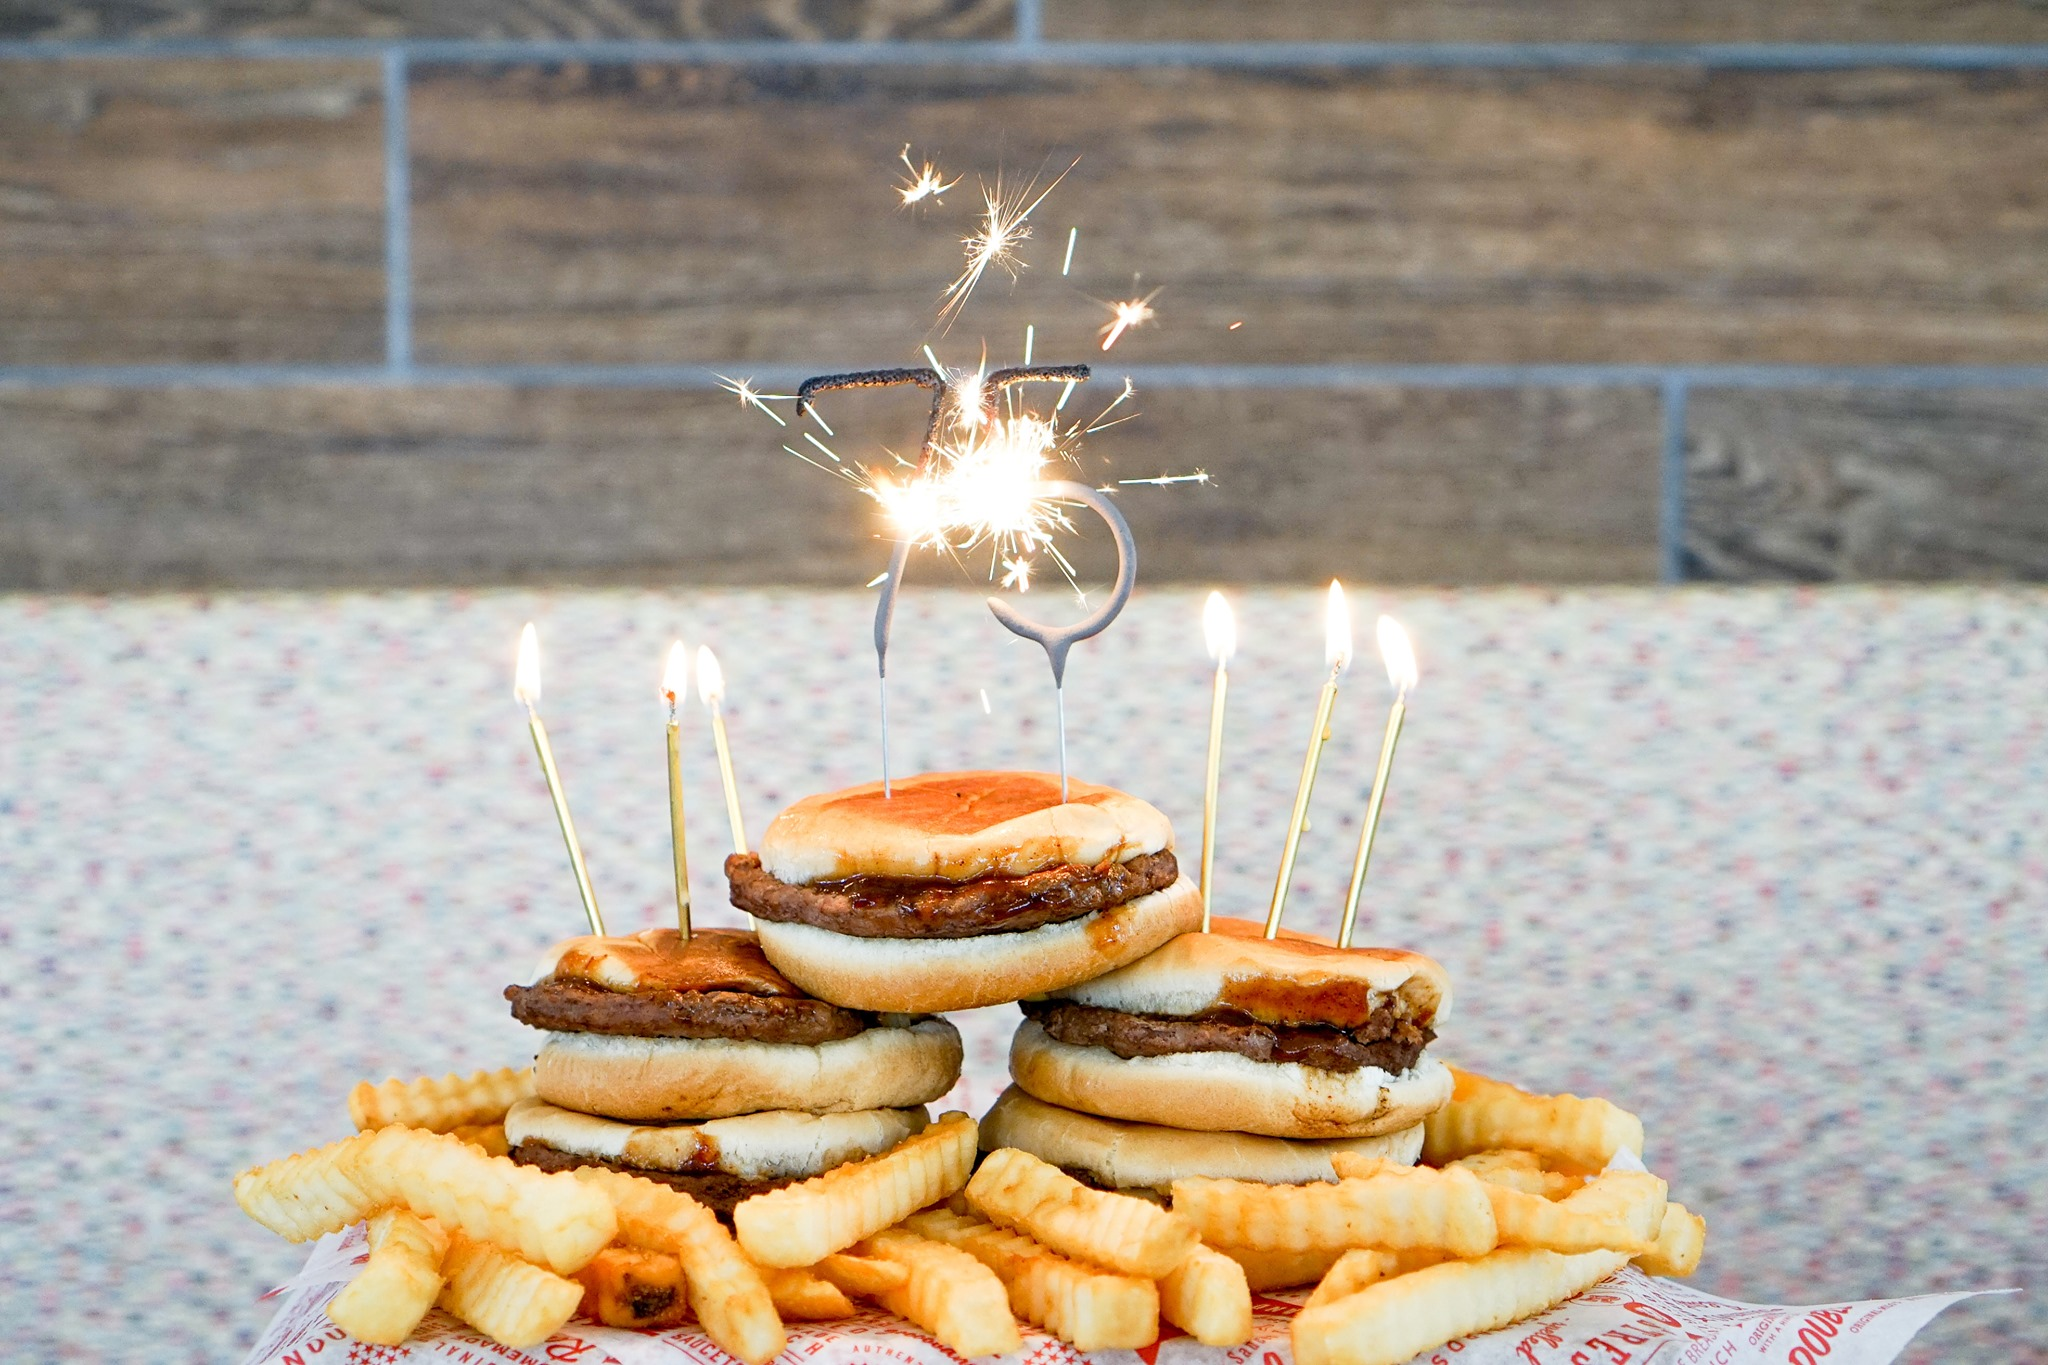 Milo's Hamburgers offering 75-cent burgers for 75th anniversary